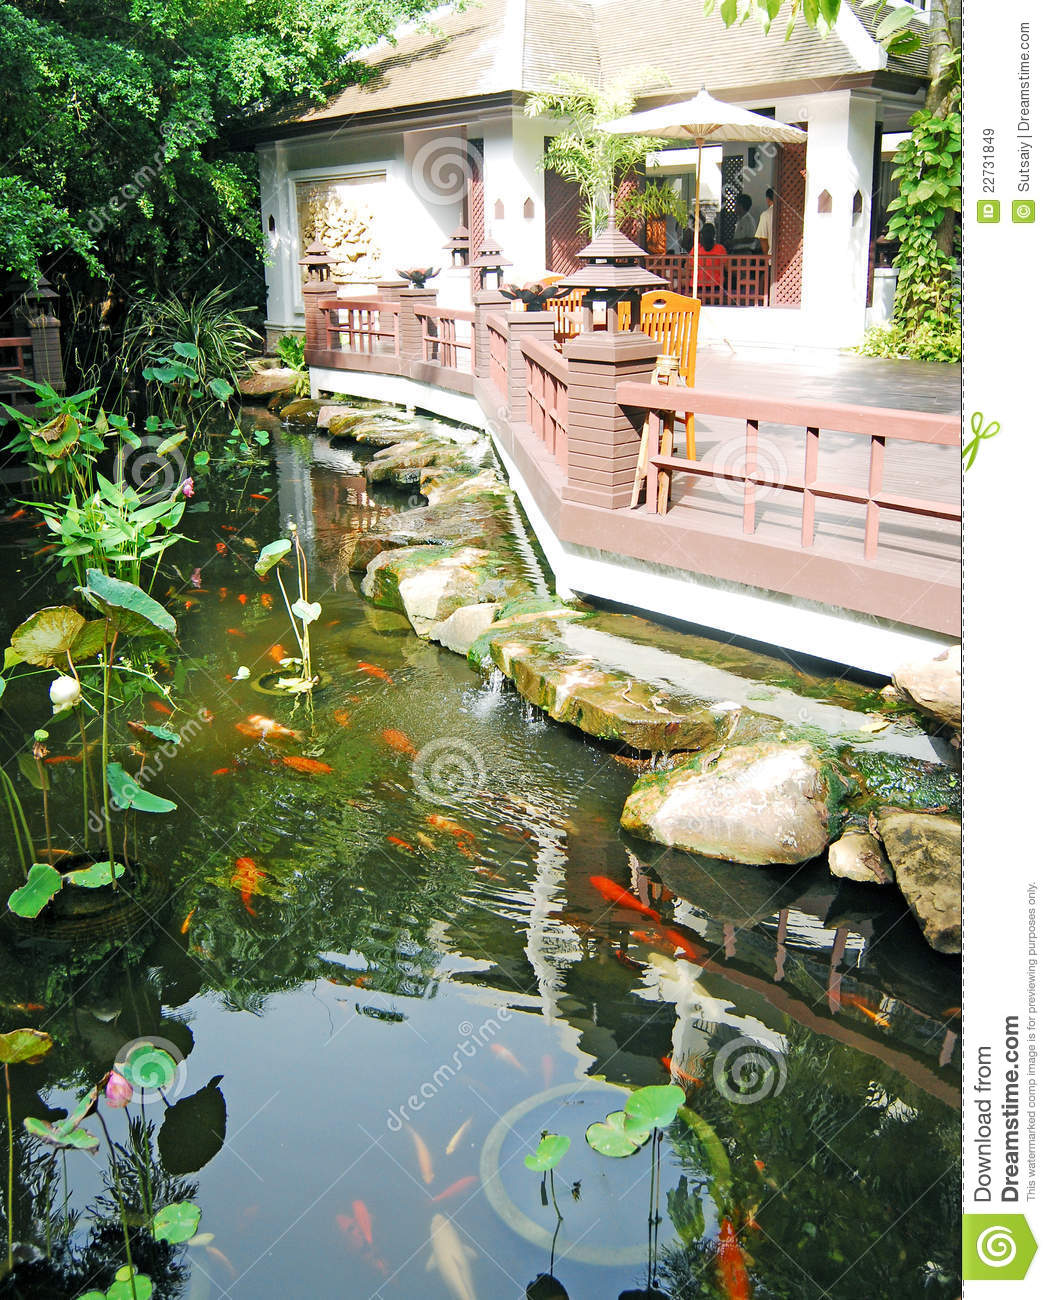 Charcas de koi im genes de archivo libres de regal as for Charcas de jardin